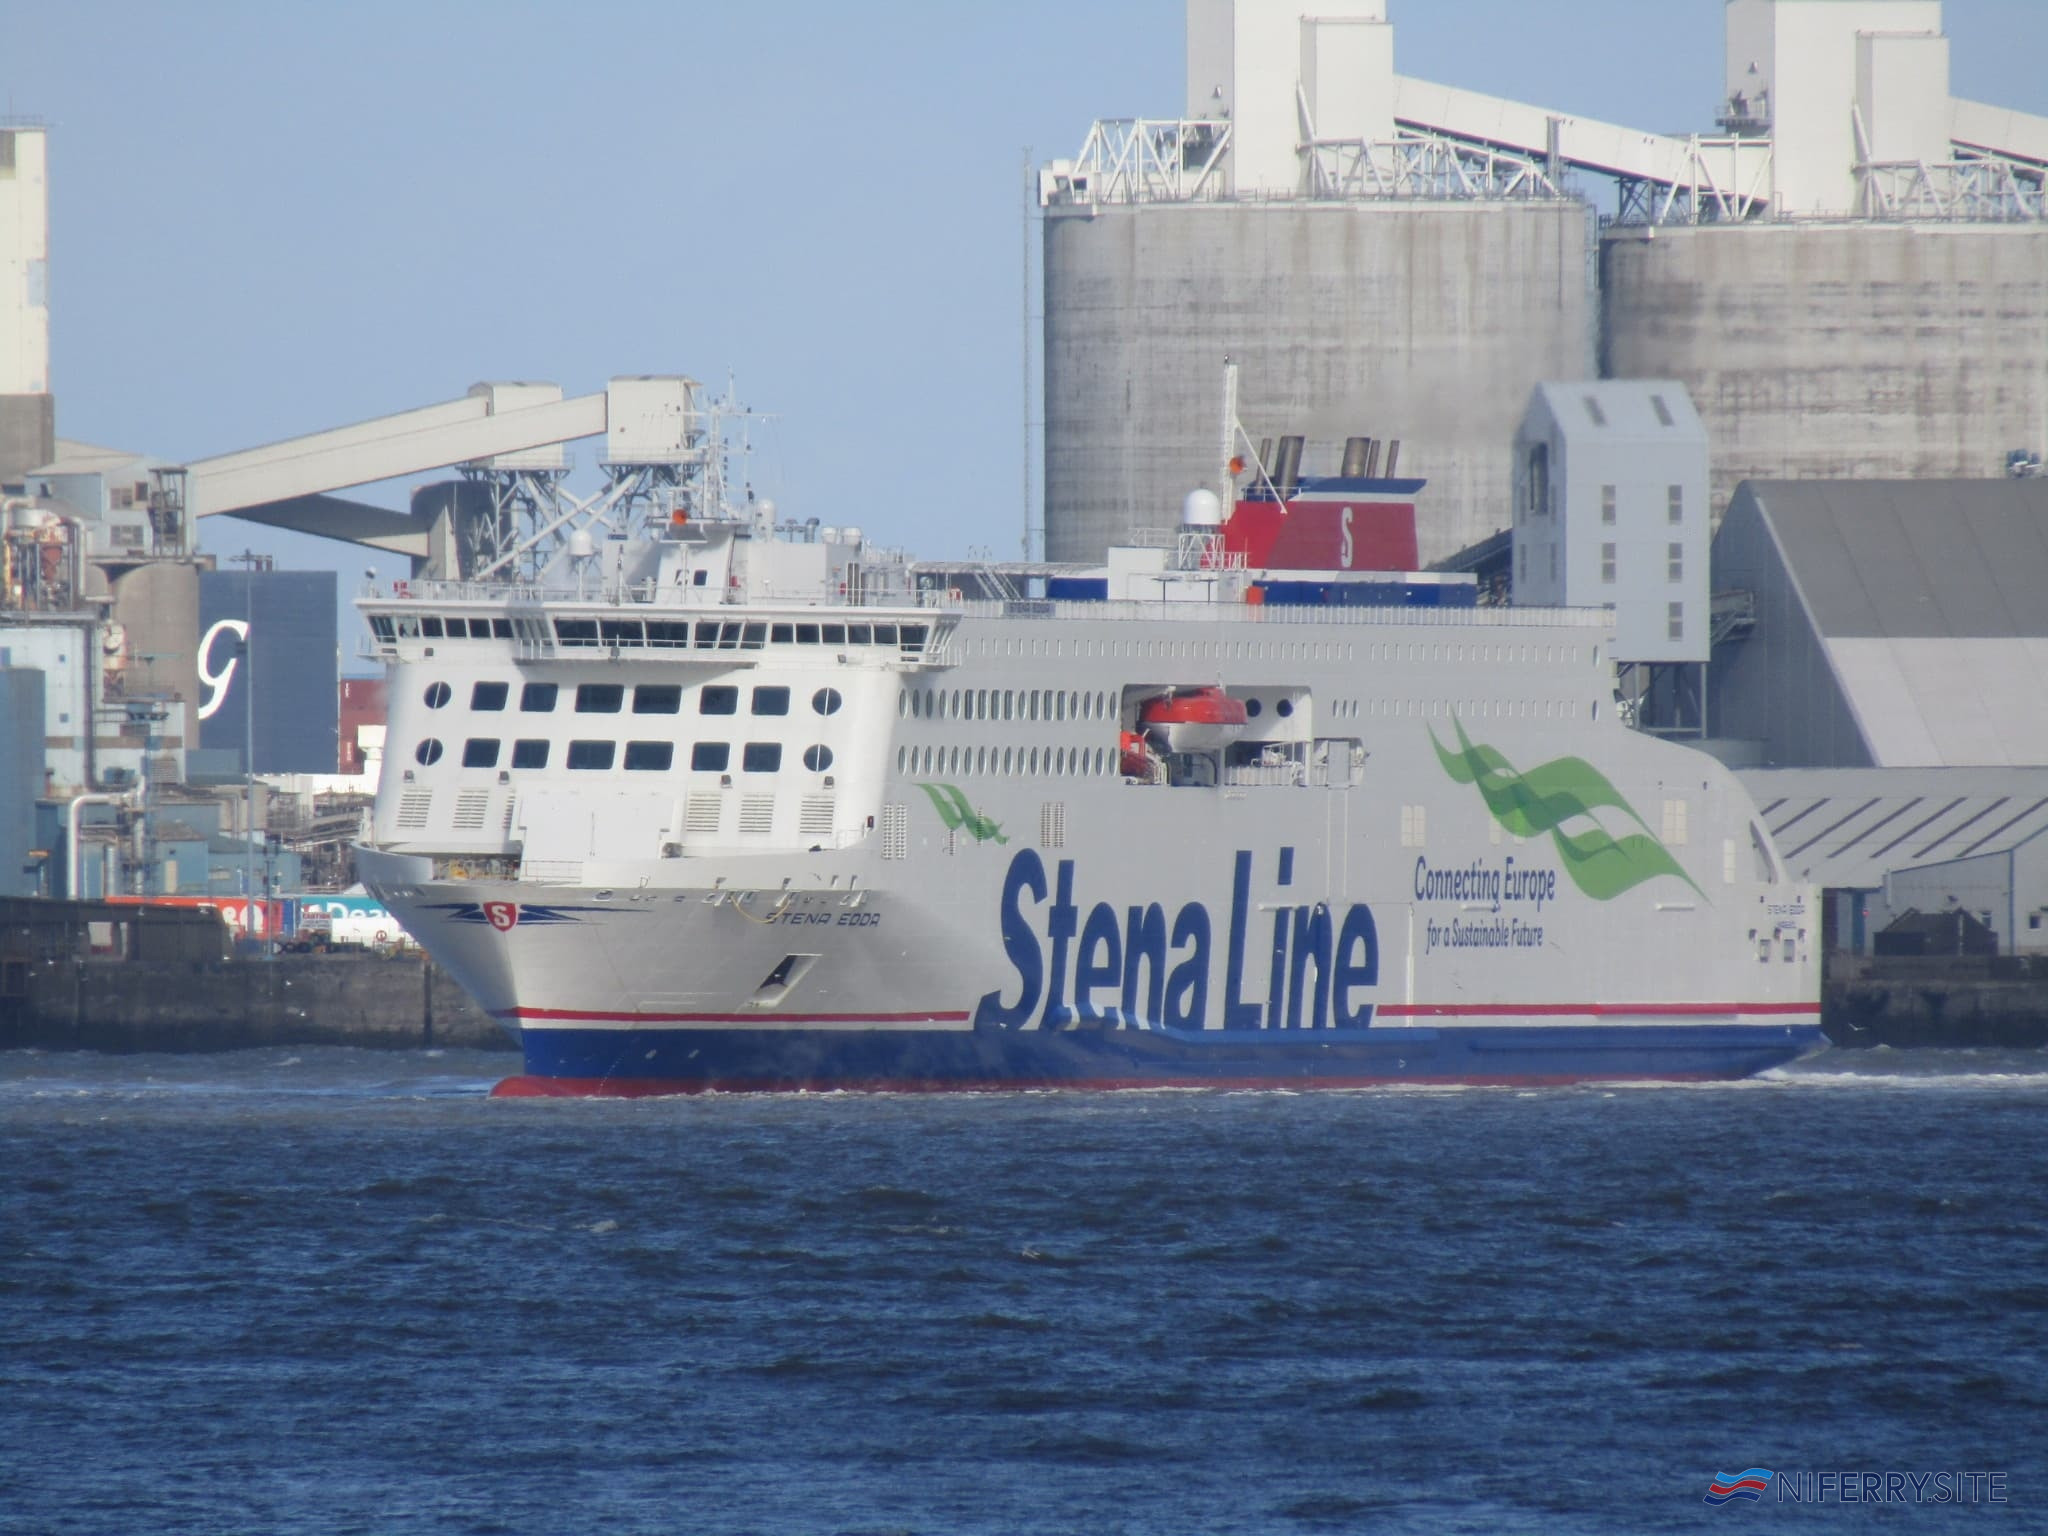 Stena Line's STENA EDDA seen sailing in the River Mersey on 08.03.20. The new ship spent much of the day sailing in and out of her 12 Quays South berth ahead of her introduction to service the following day. Copyright © Rob Foy.